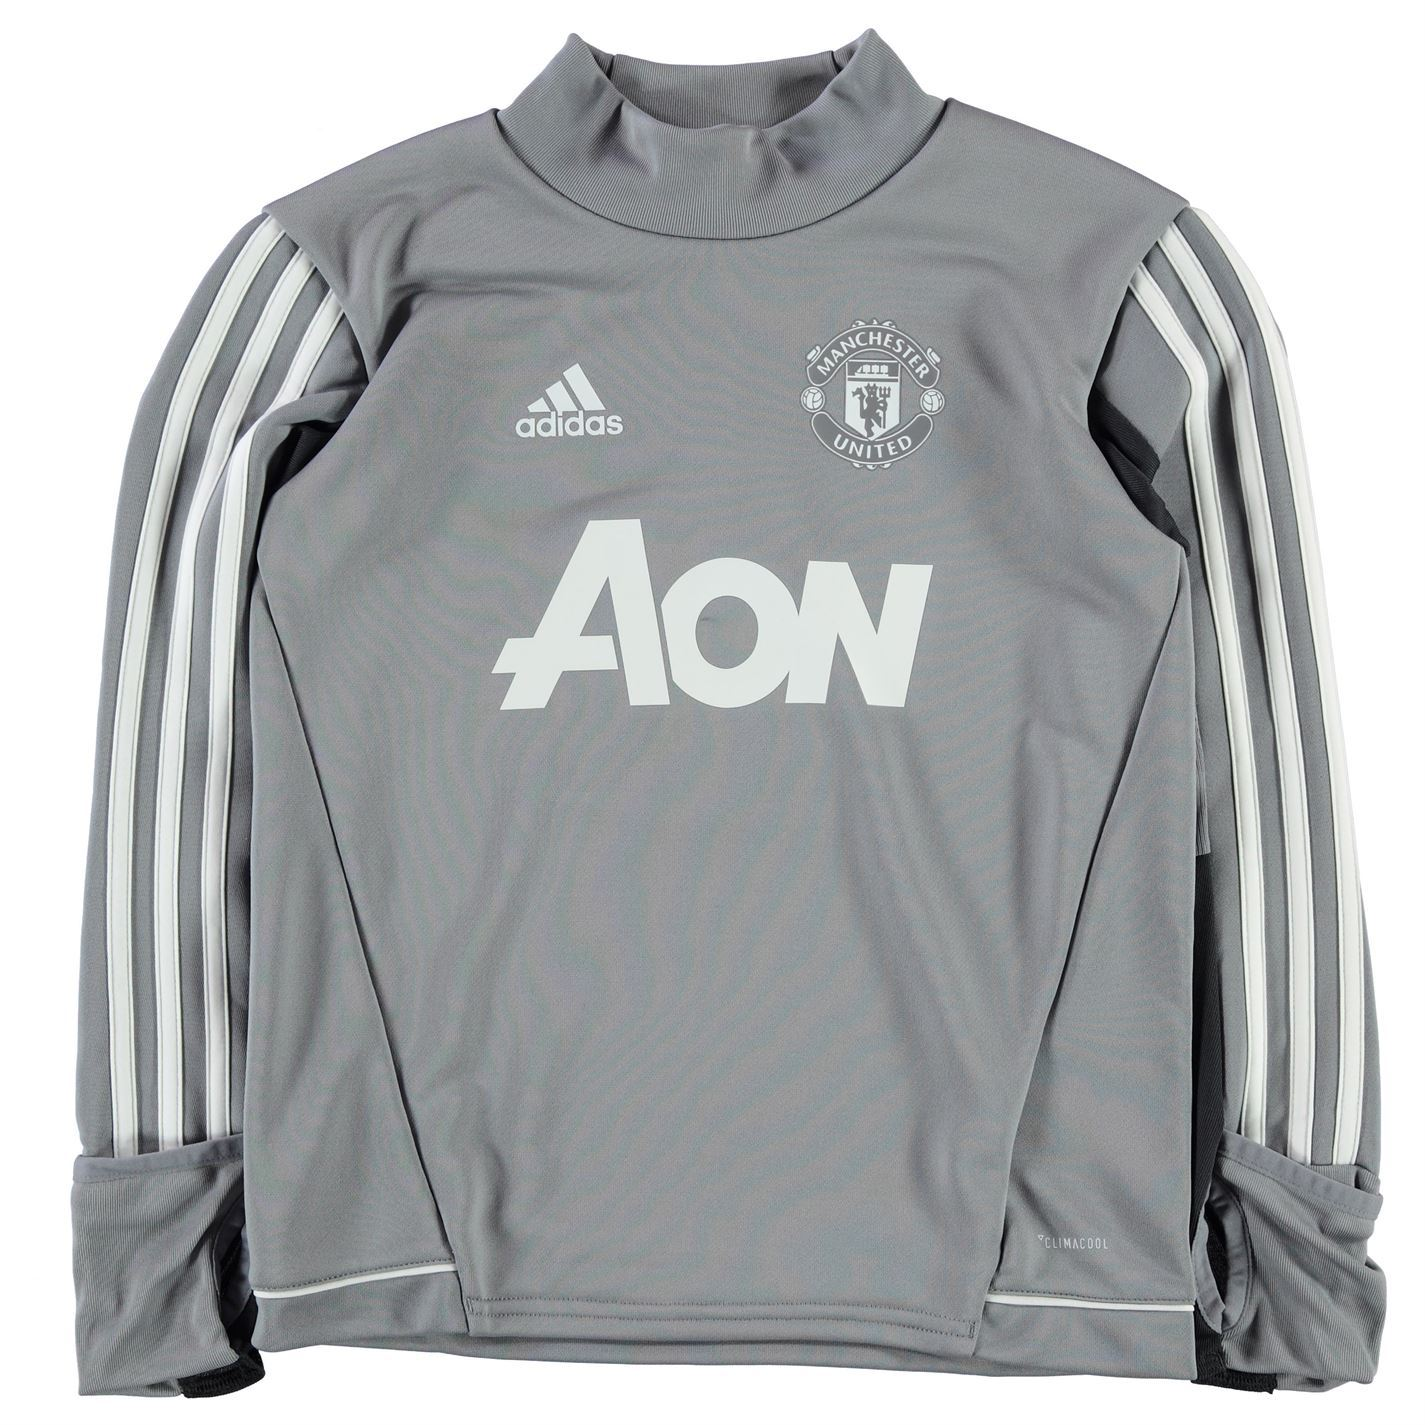 96a068ad3 adidas Manchester United Training Top Juniors Grey White Football Soccer Top